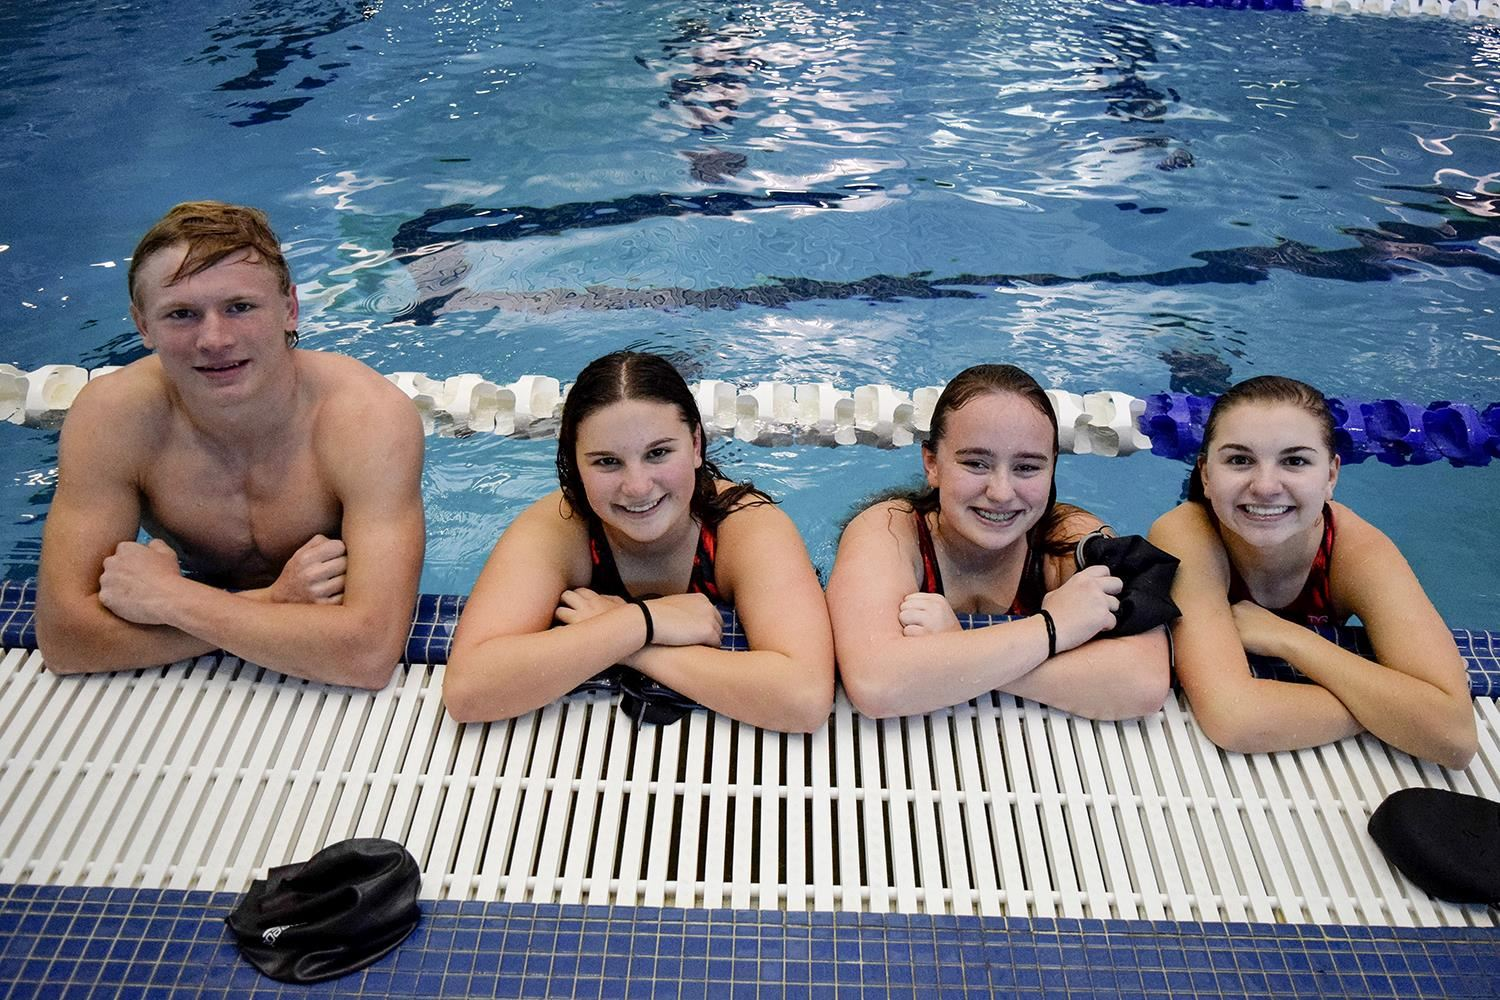 Swimmers pose in the pool